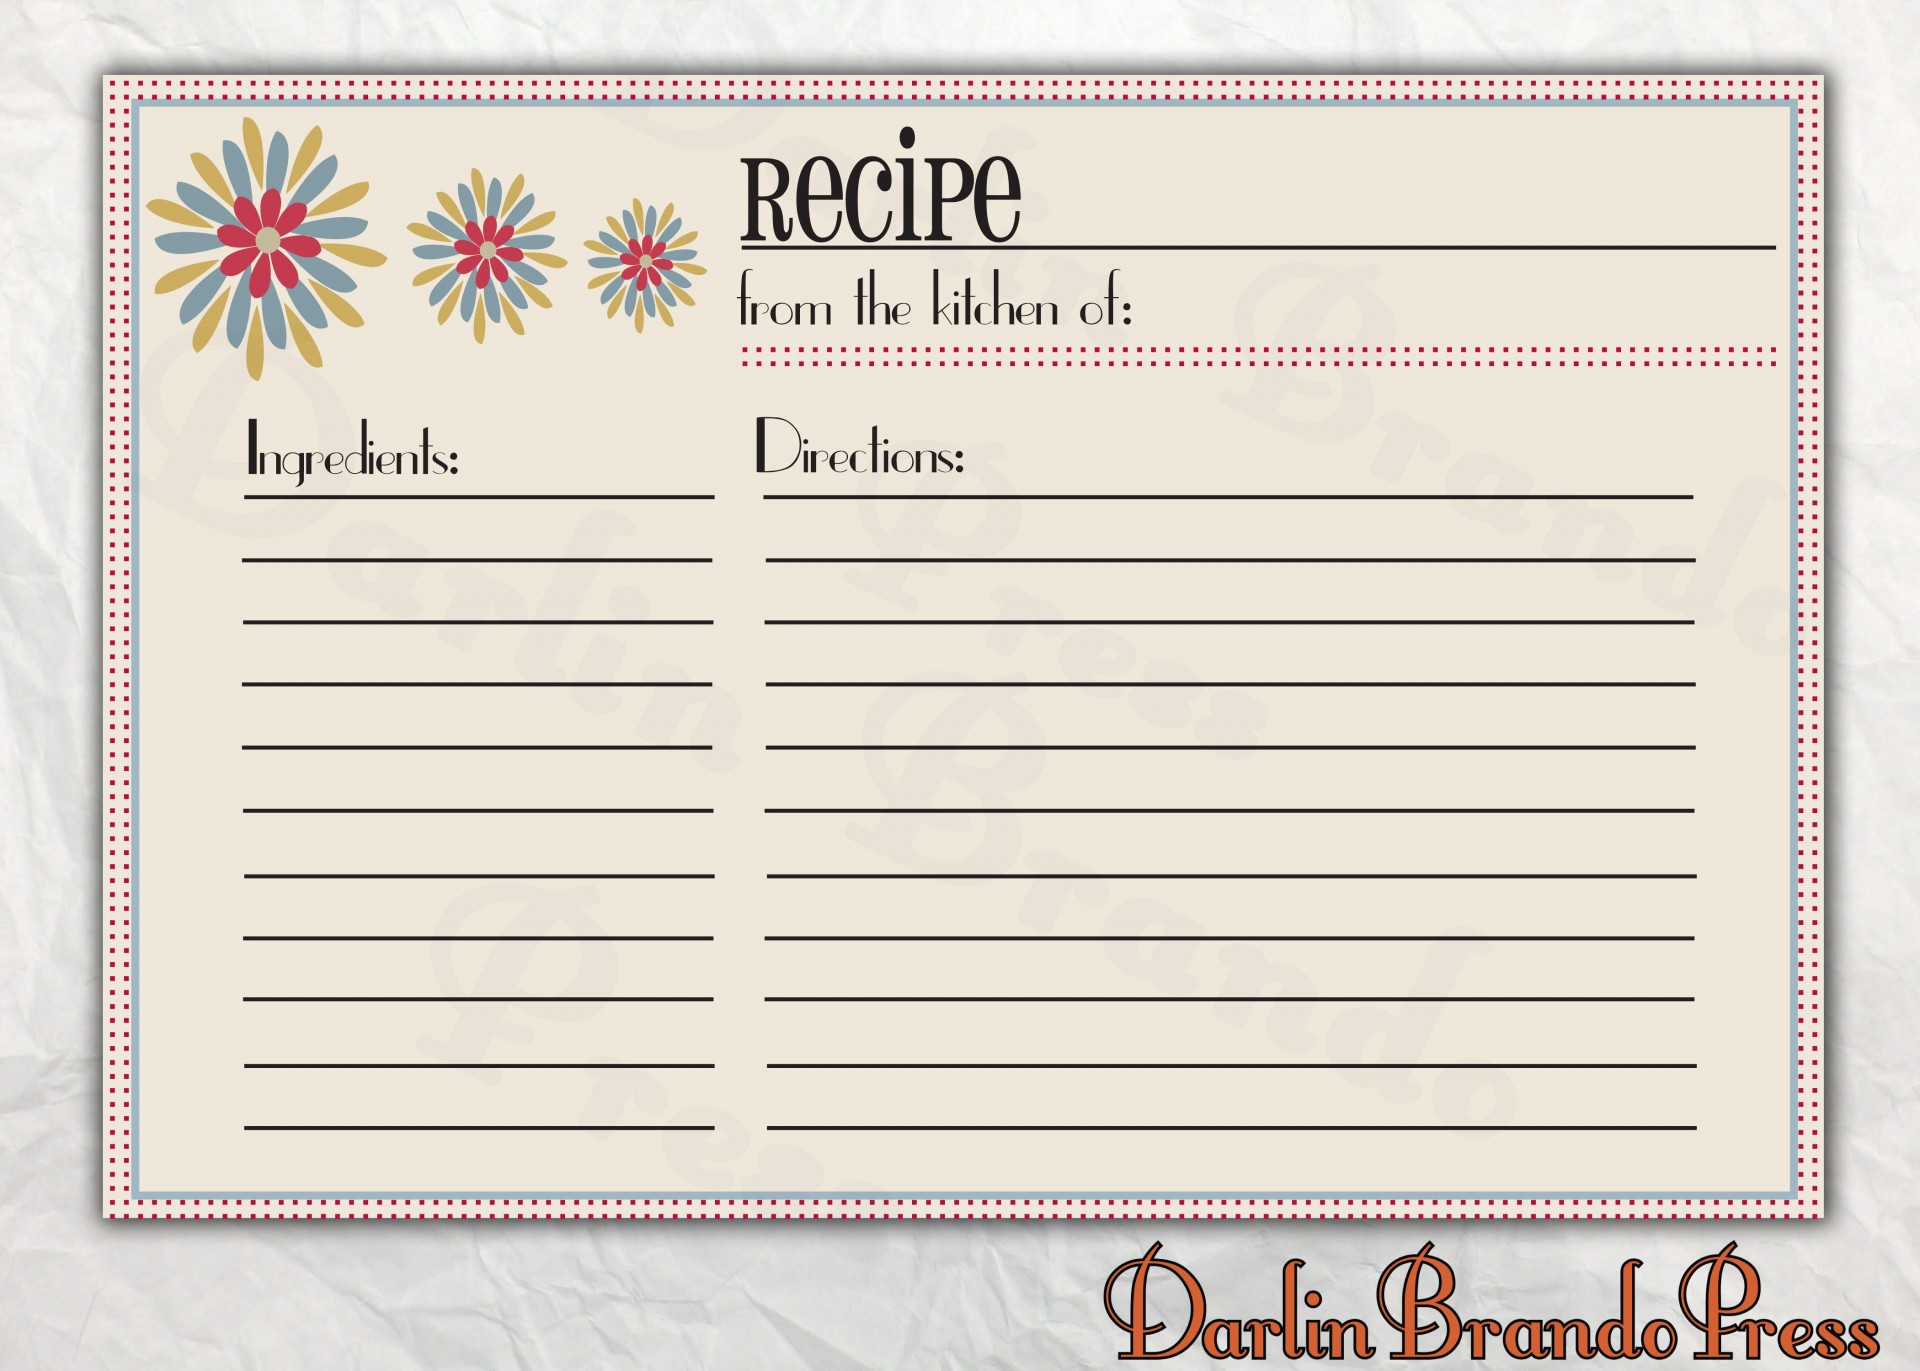 005 Fascinating Free Recipe Template For Word Highest Quality  Book Editable Card Microsoft 4x6 Page1920